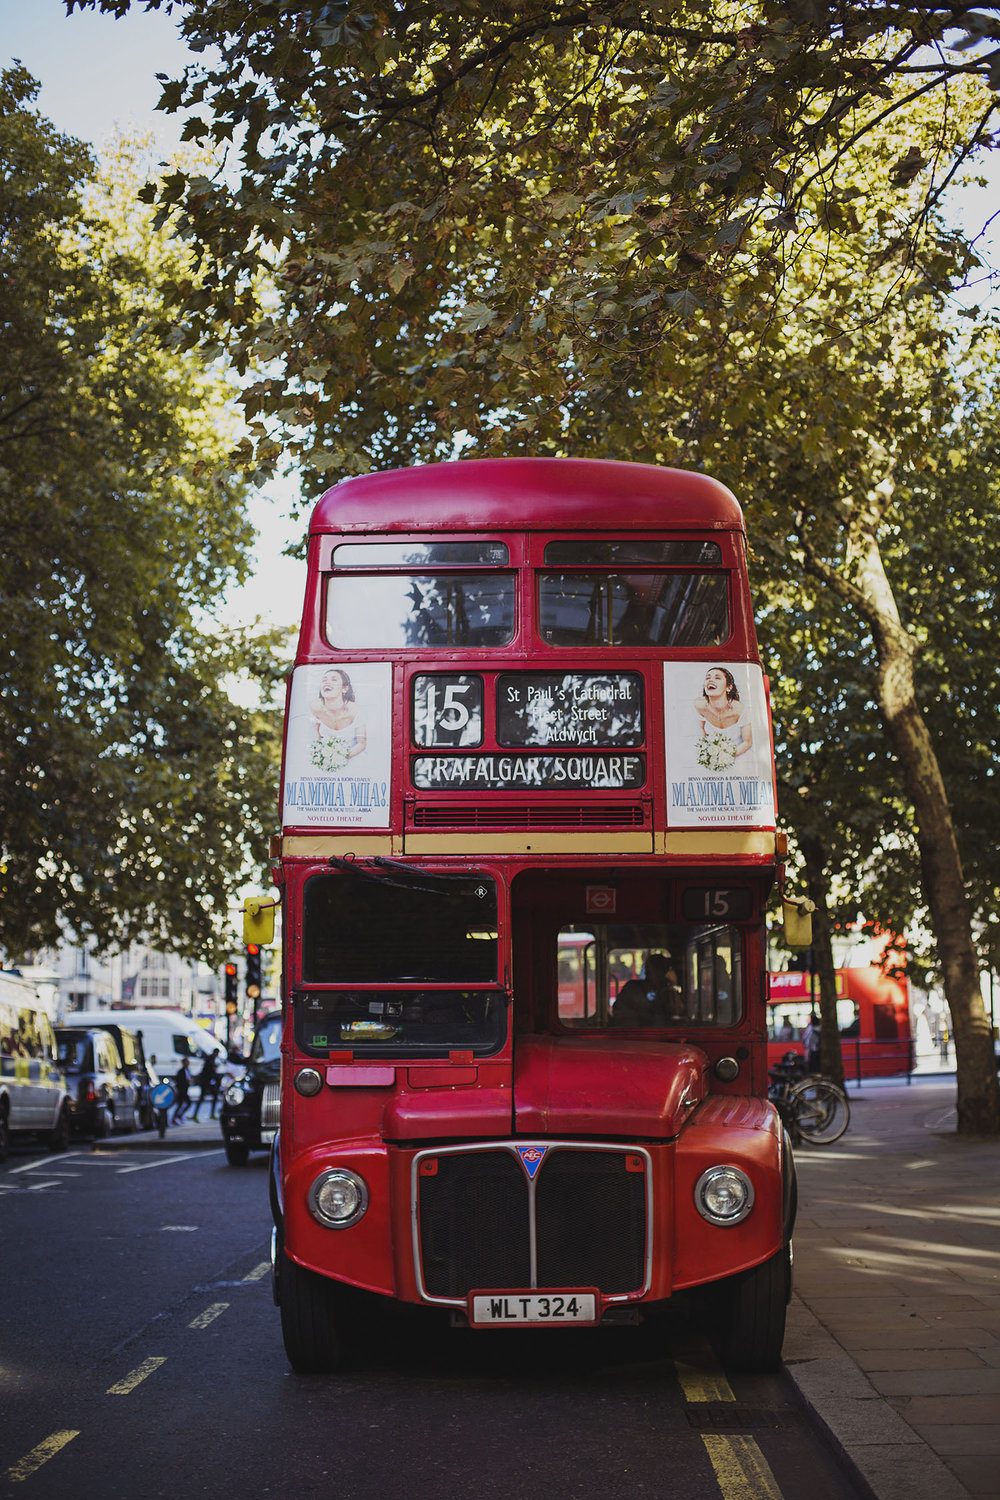 trafalgar square london red bus corinthia hotel wedding photographer